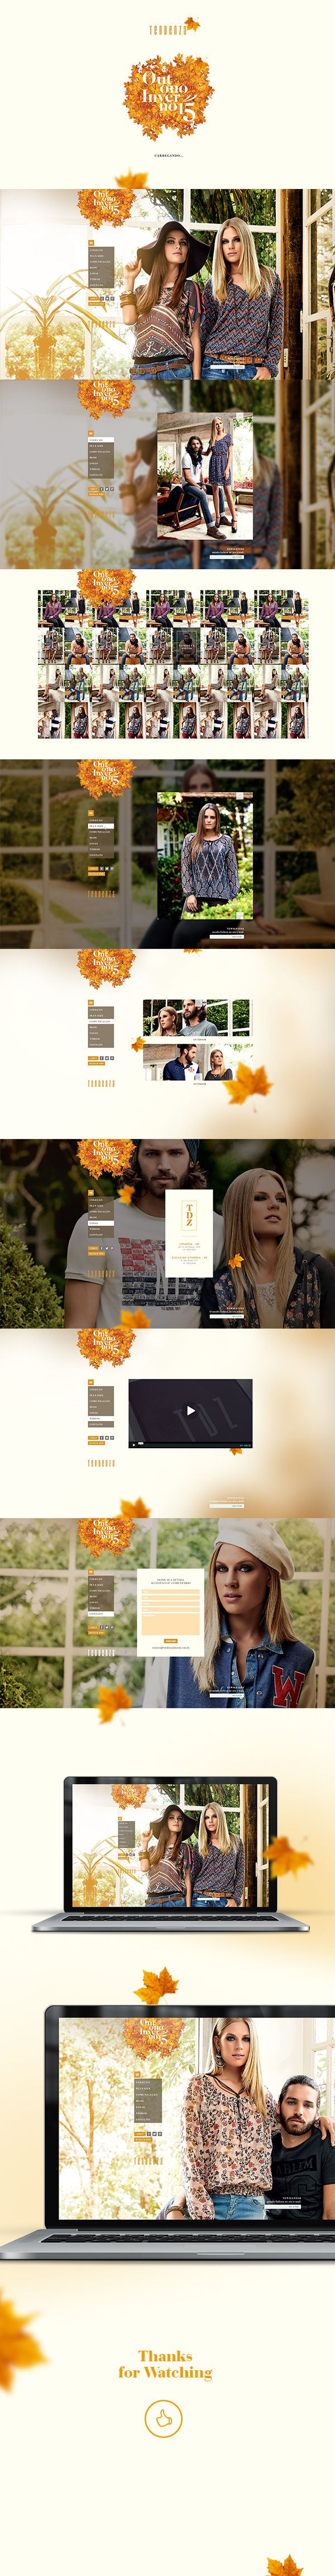 Site - Winter Collection 2015 - Tendenza on Behance web design fashion